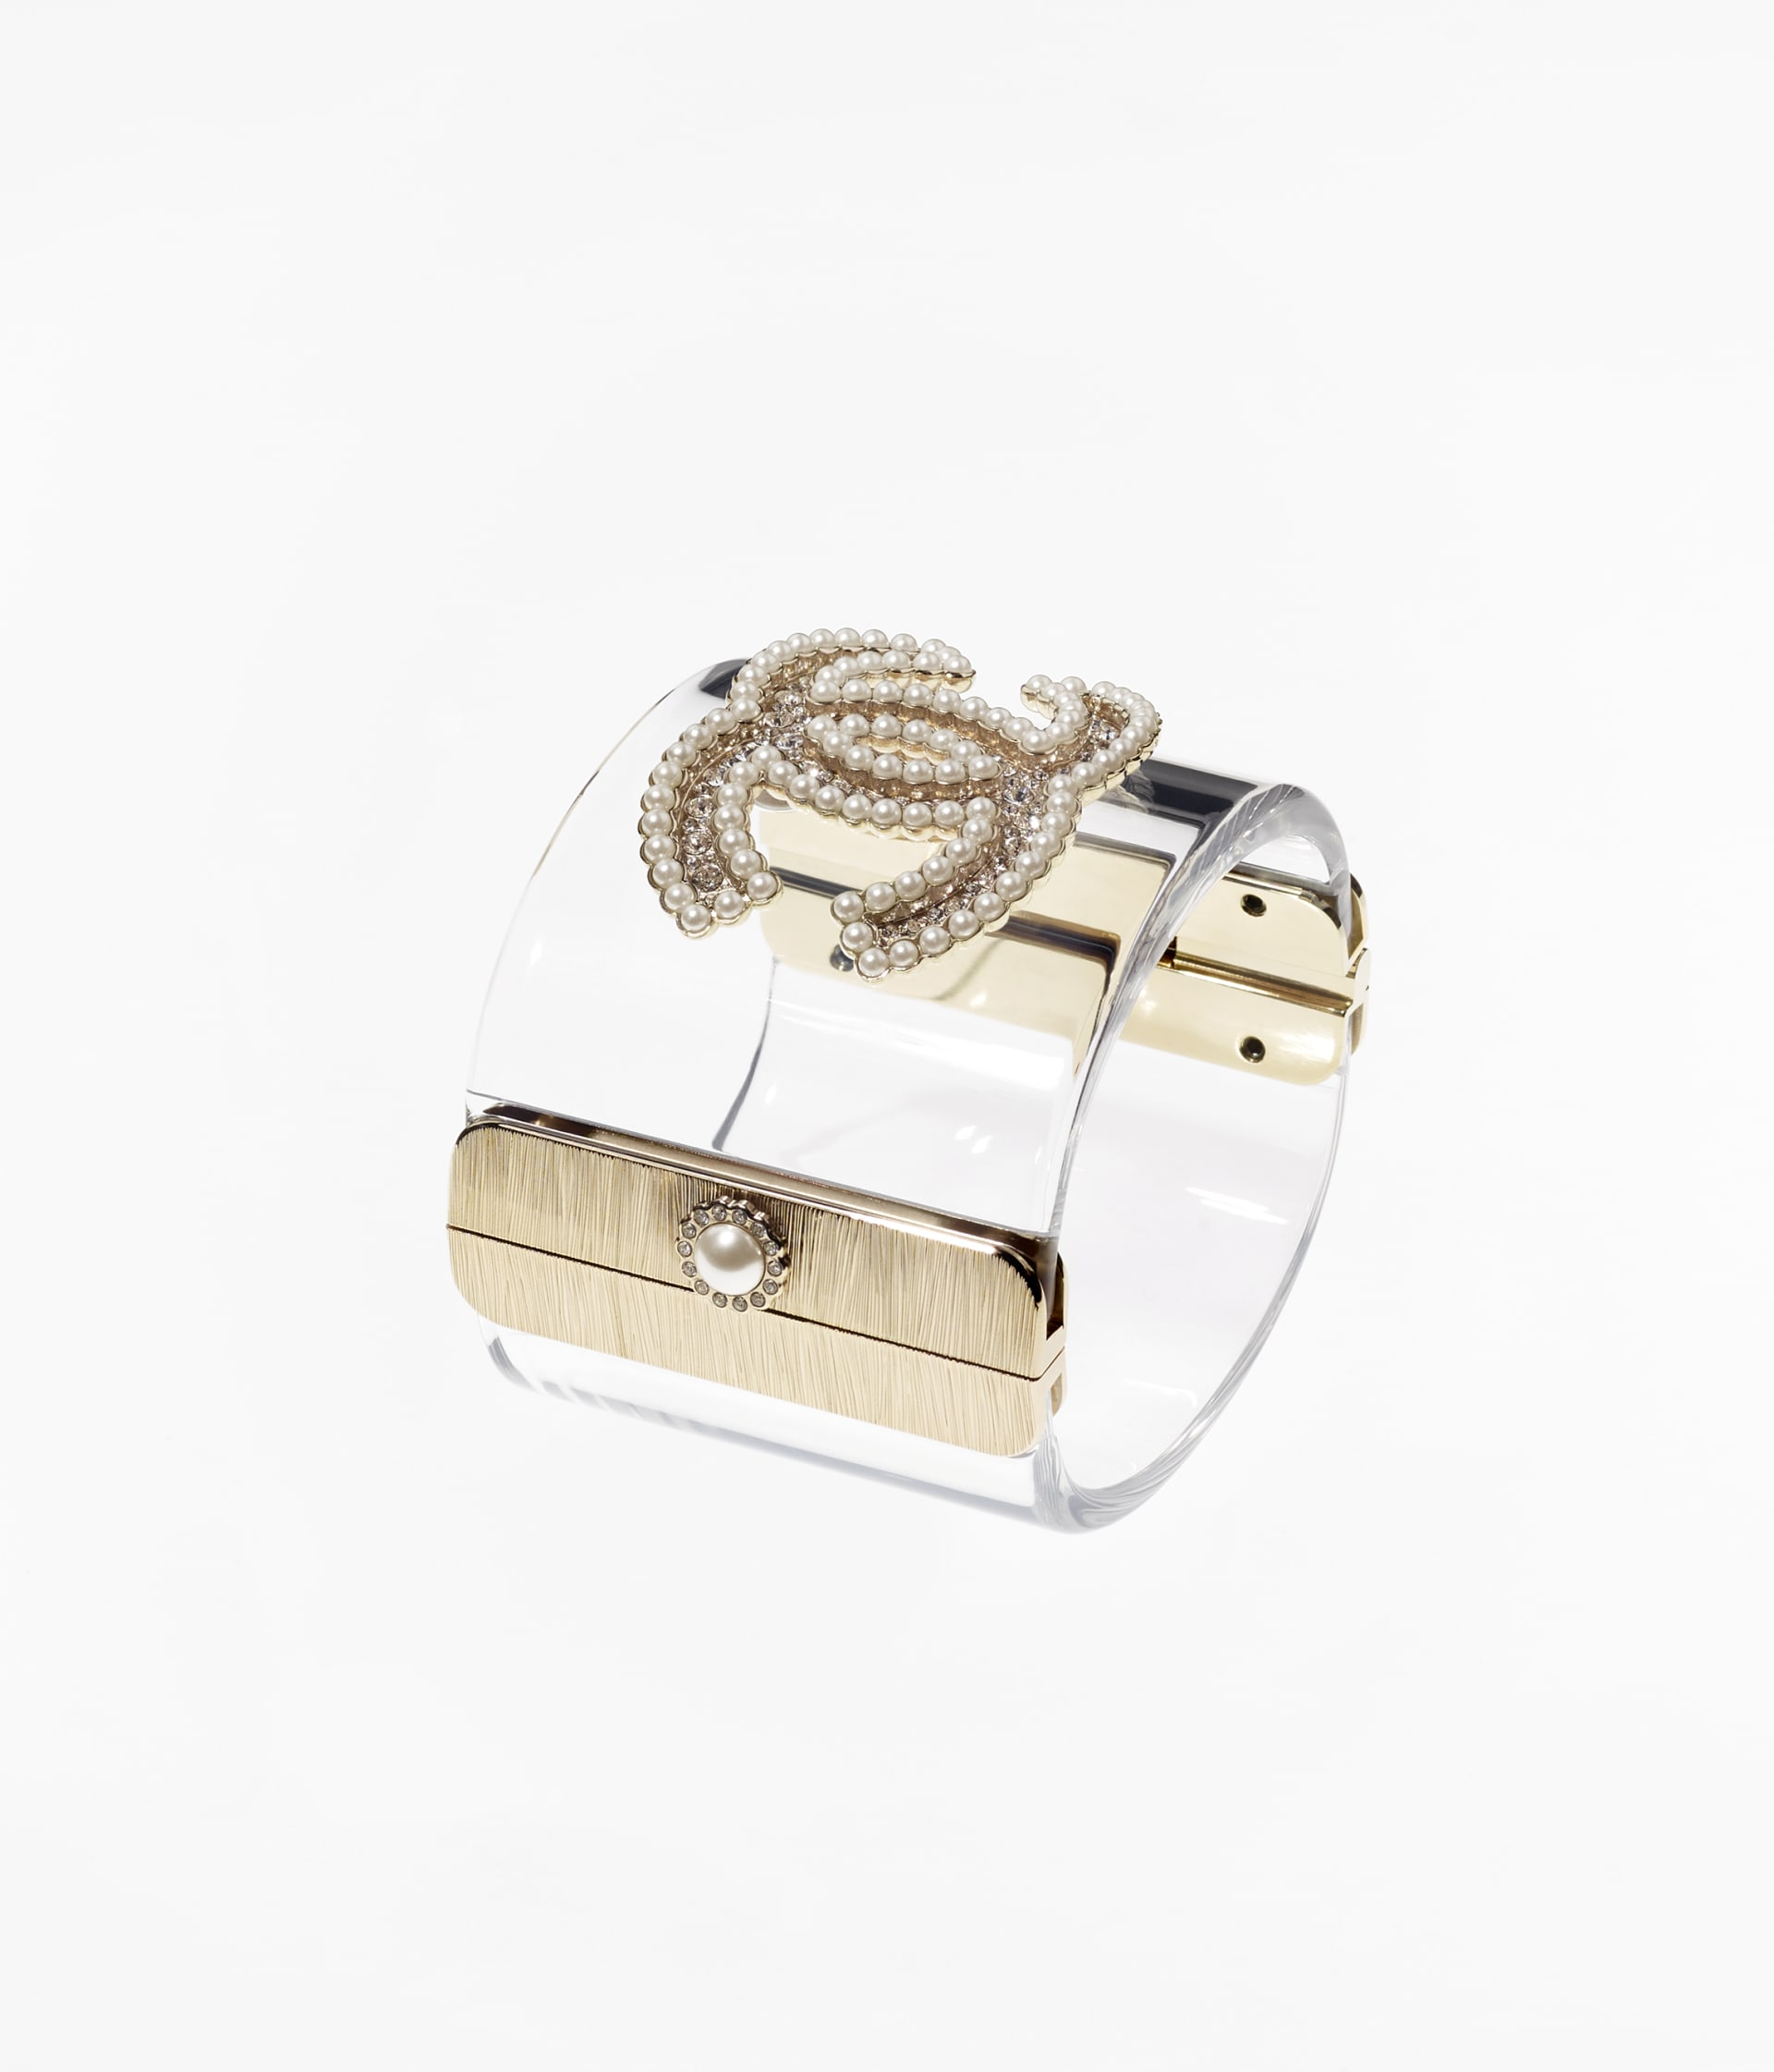 image 2 - Cuff - Resin, Strass, Glass Pearls & Metal - Gold, Transparent, Crystal & Pearly White